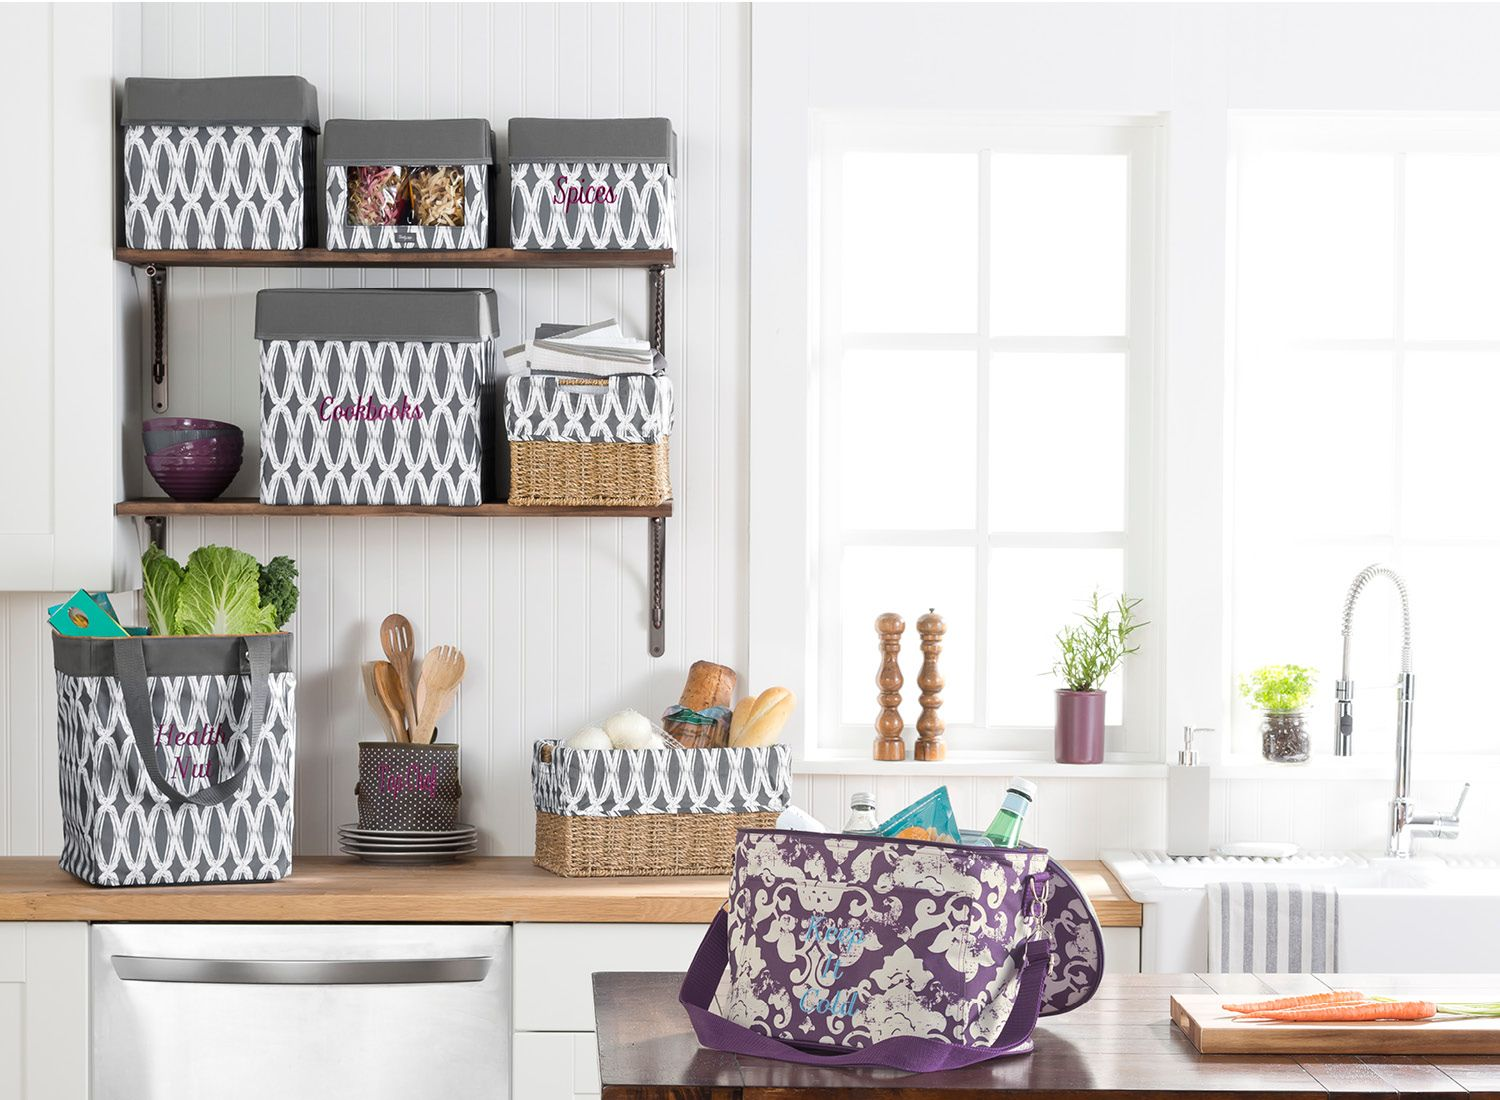 Superior Use Your Way Cubes, Your Way Rectangles, U0026 You Way Rectangle Basket To  Bring Organization To Your Kitchen. Pictured: Family Fun Thermal In Vintage  Damask ...